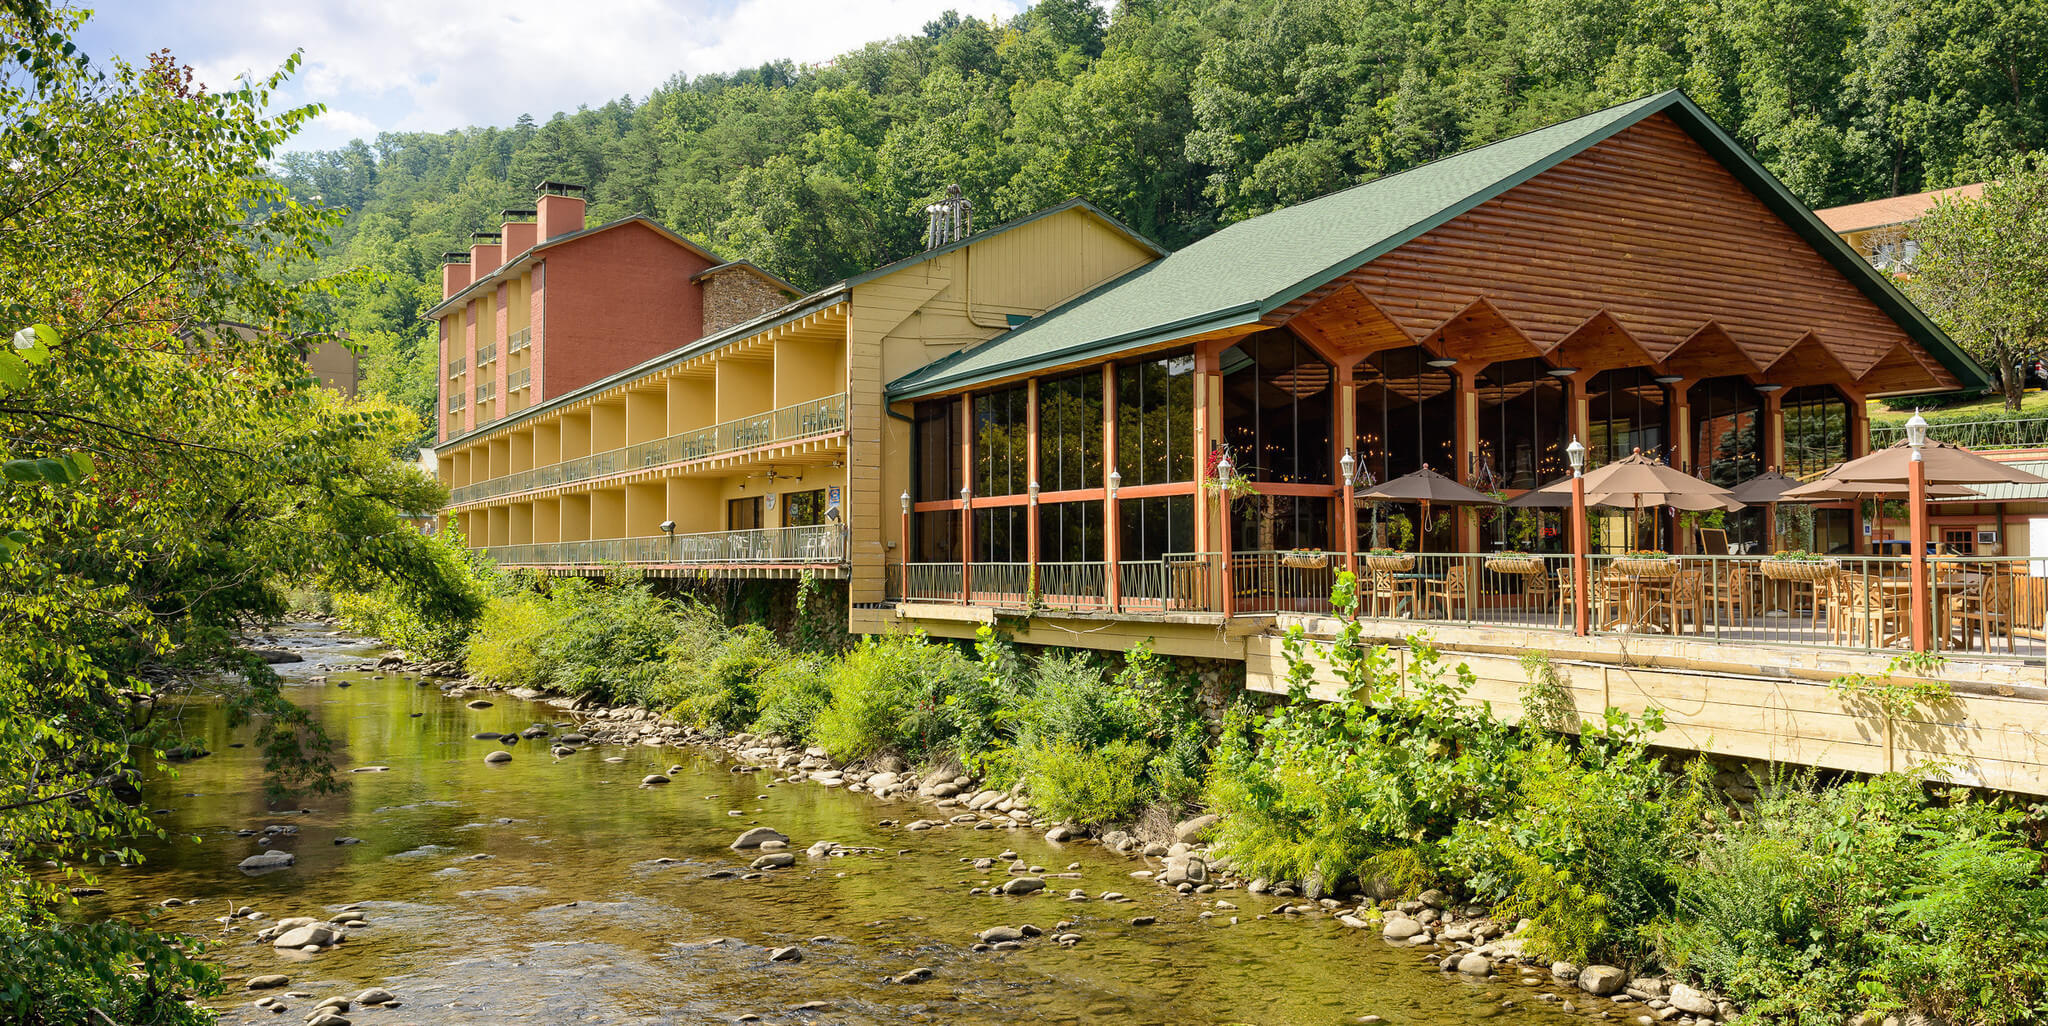 Sports Grill With Outdoor Deck Along Little Pigeon River In Downtown Gatlinburg Terrace Resort